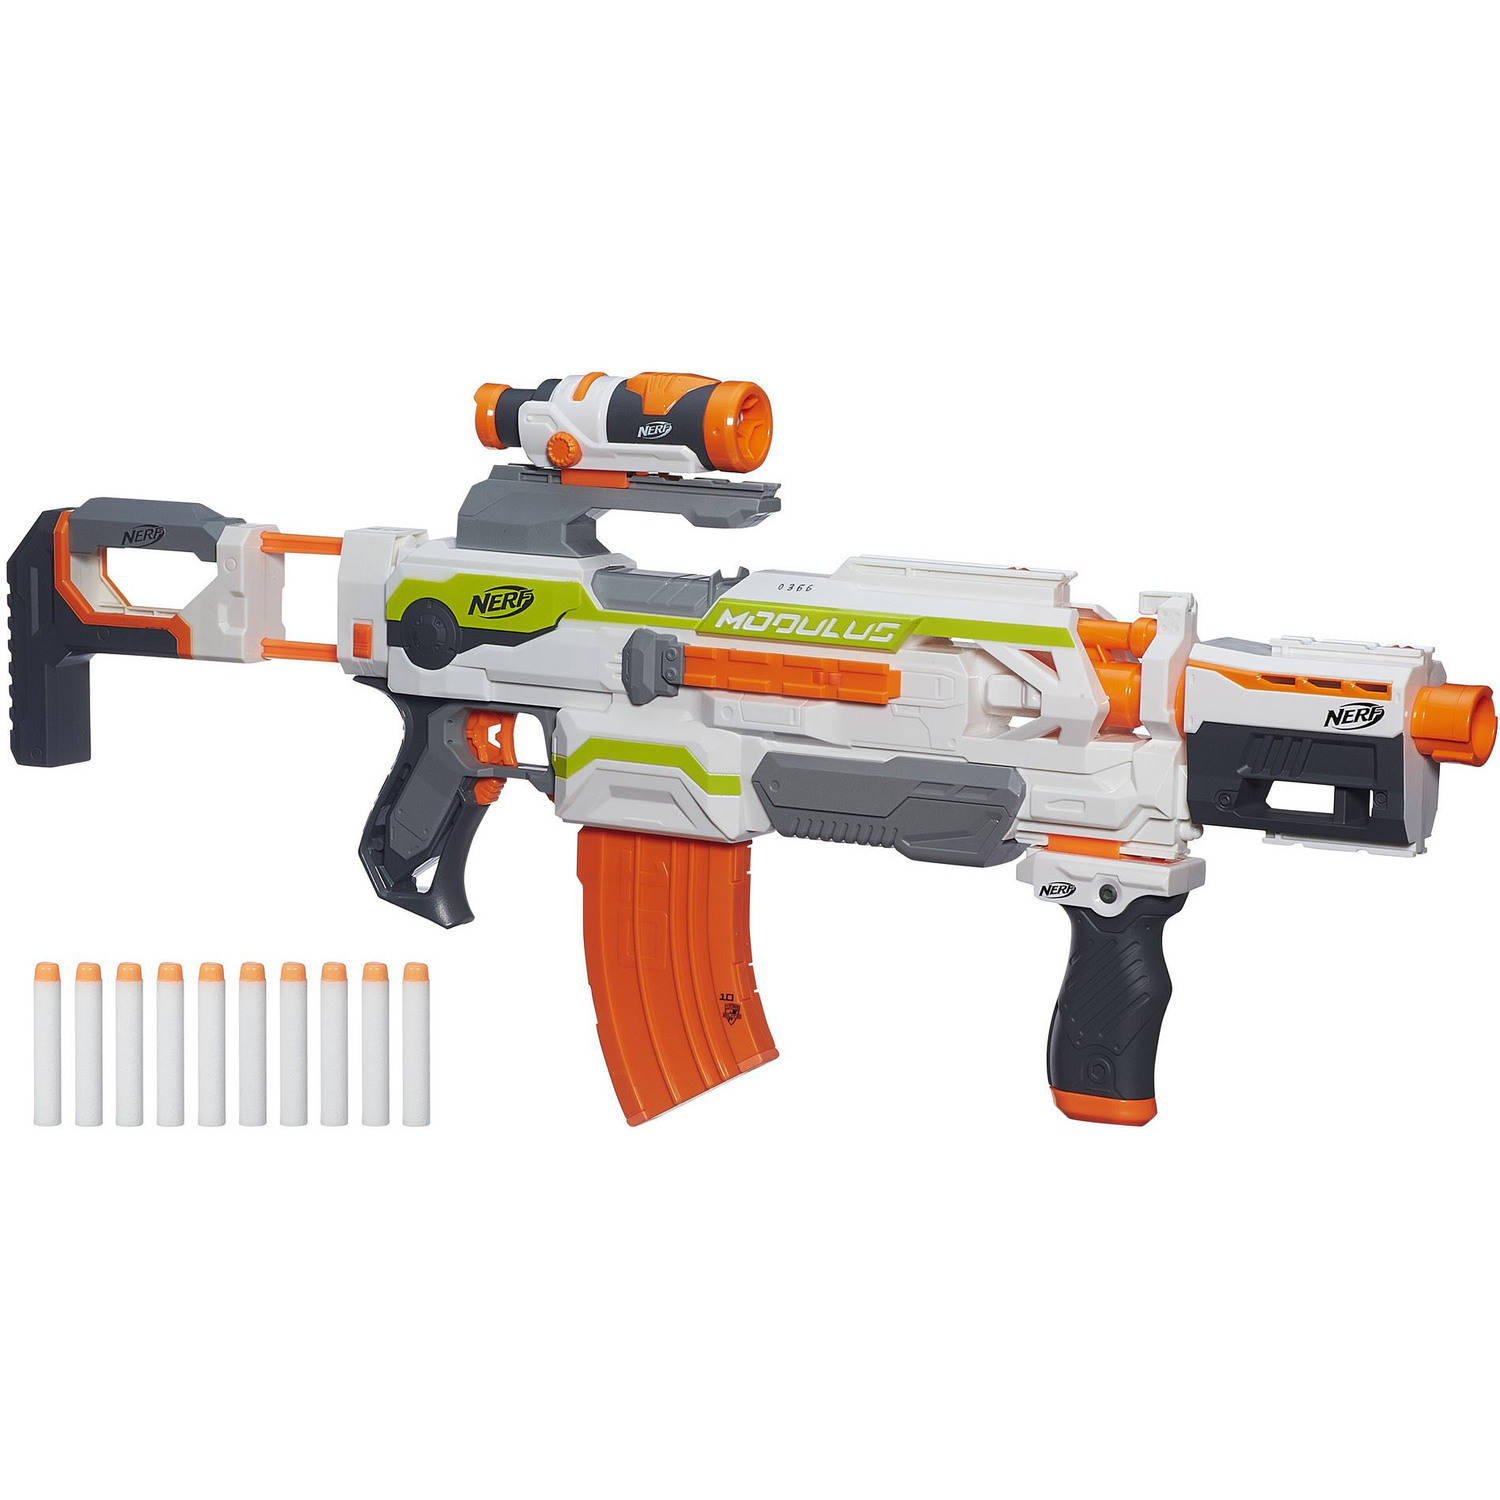 MODULUS CUSTOMIZER Build your own blaster for almost any battle or mission  with the. Nerf N-Strike Modulus ECS-10 blaster!